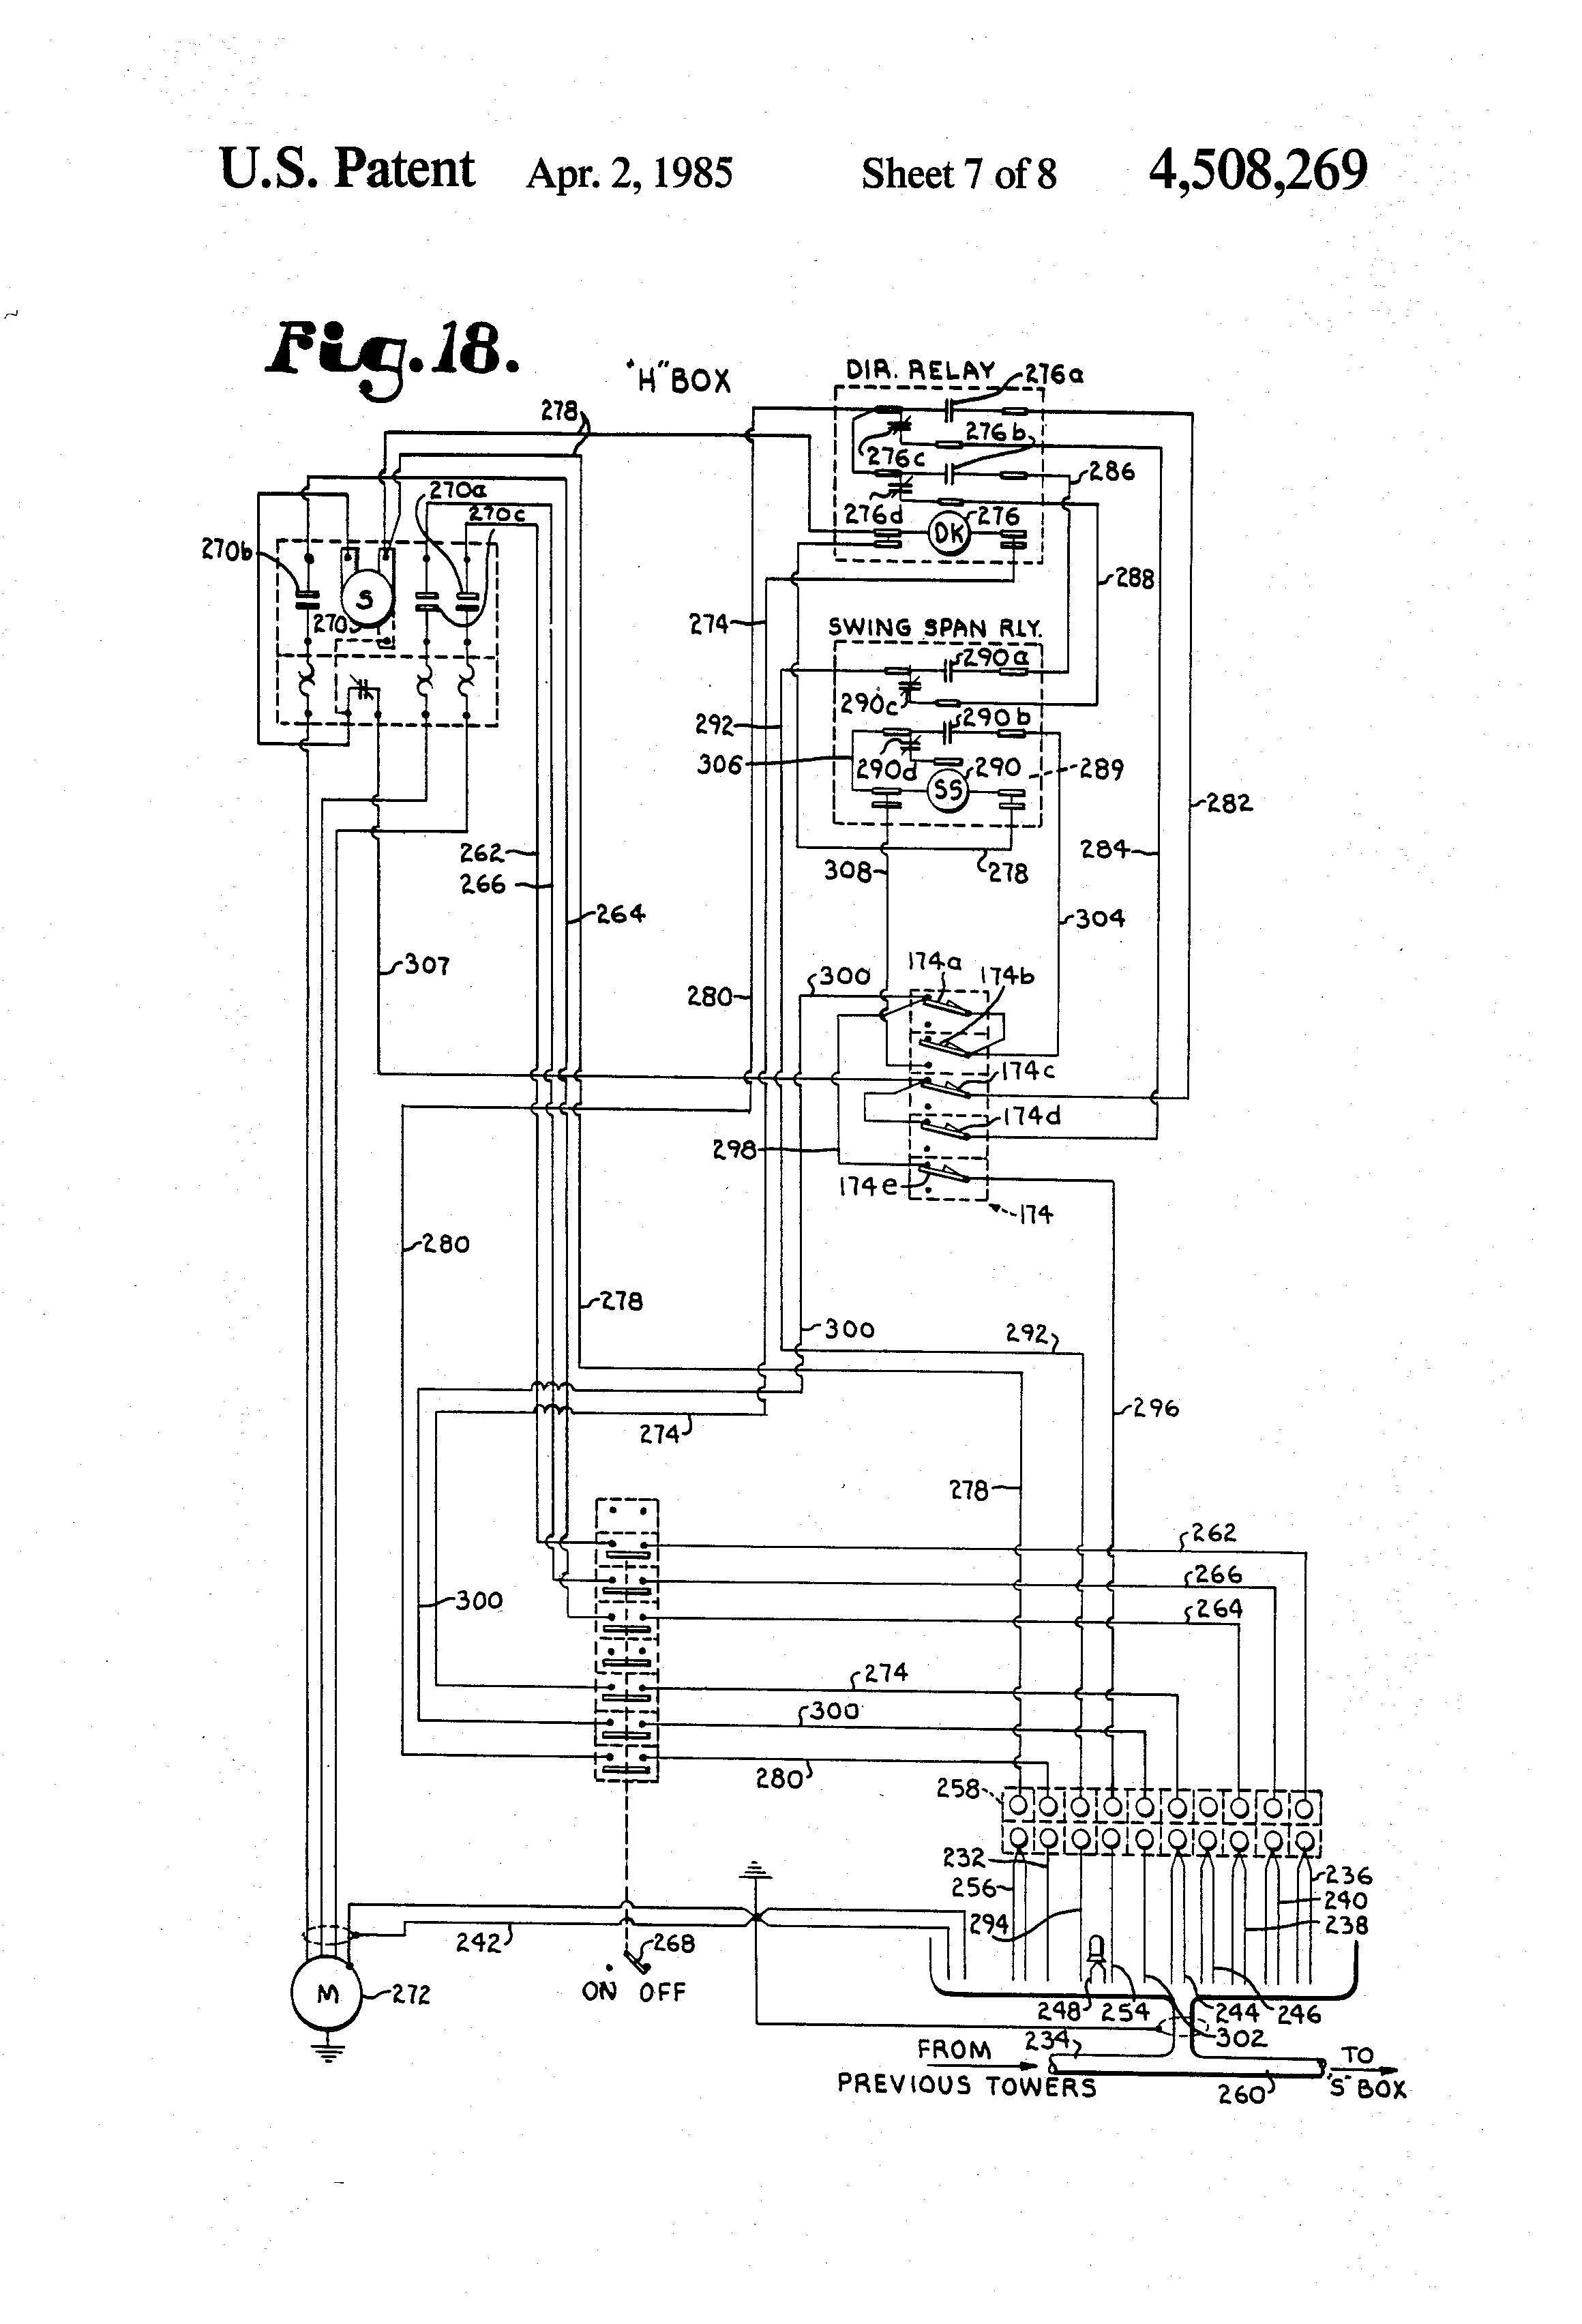 reinke wiring diagram tower box   31 wiring diagram images